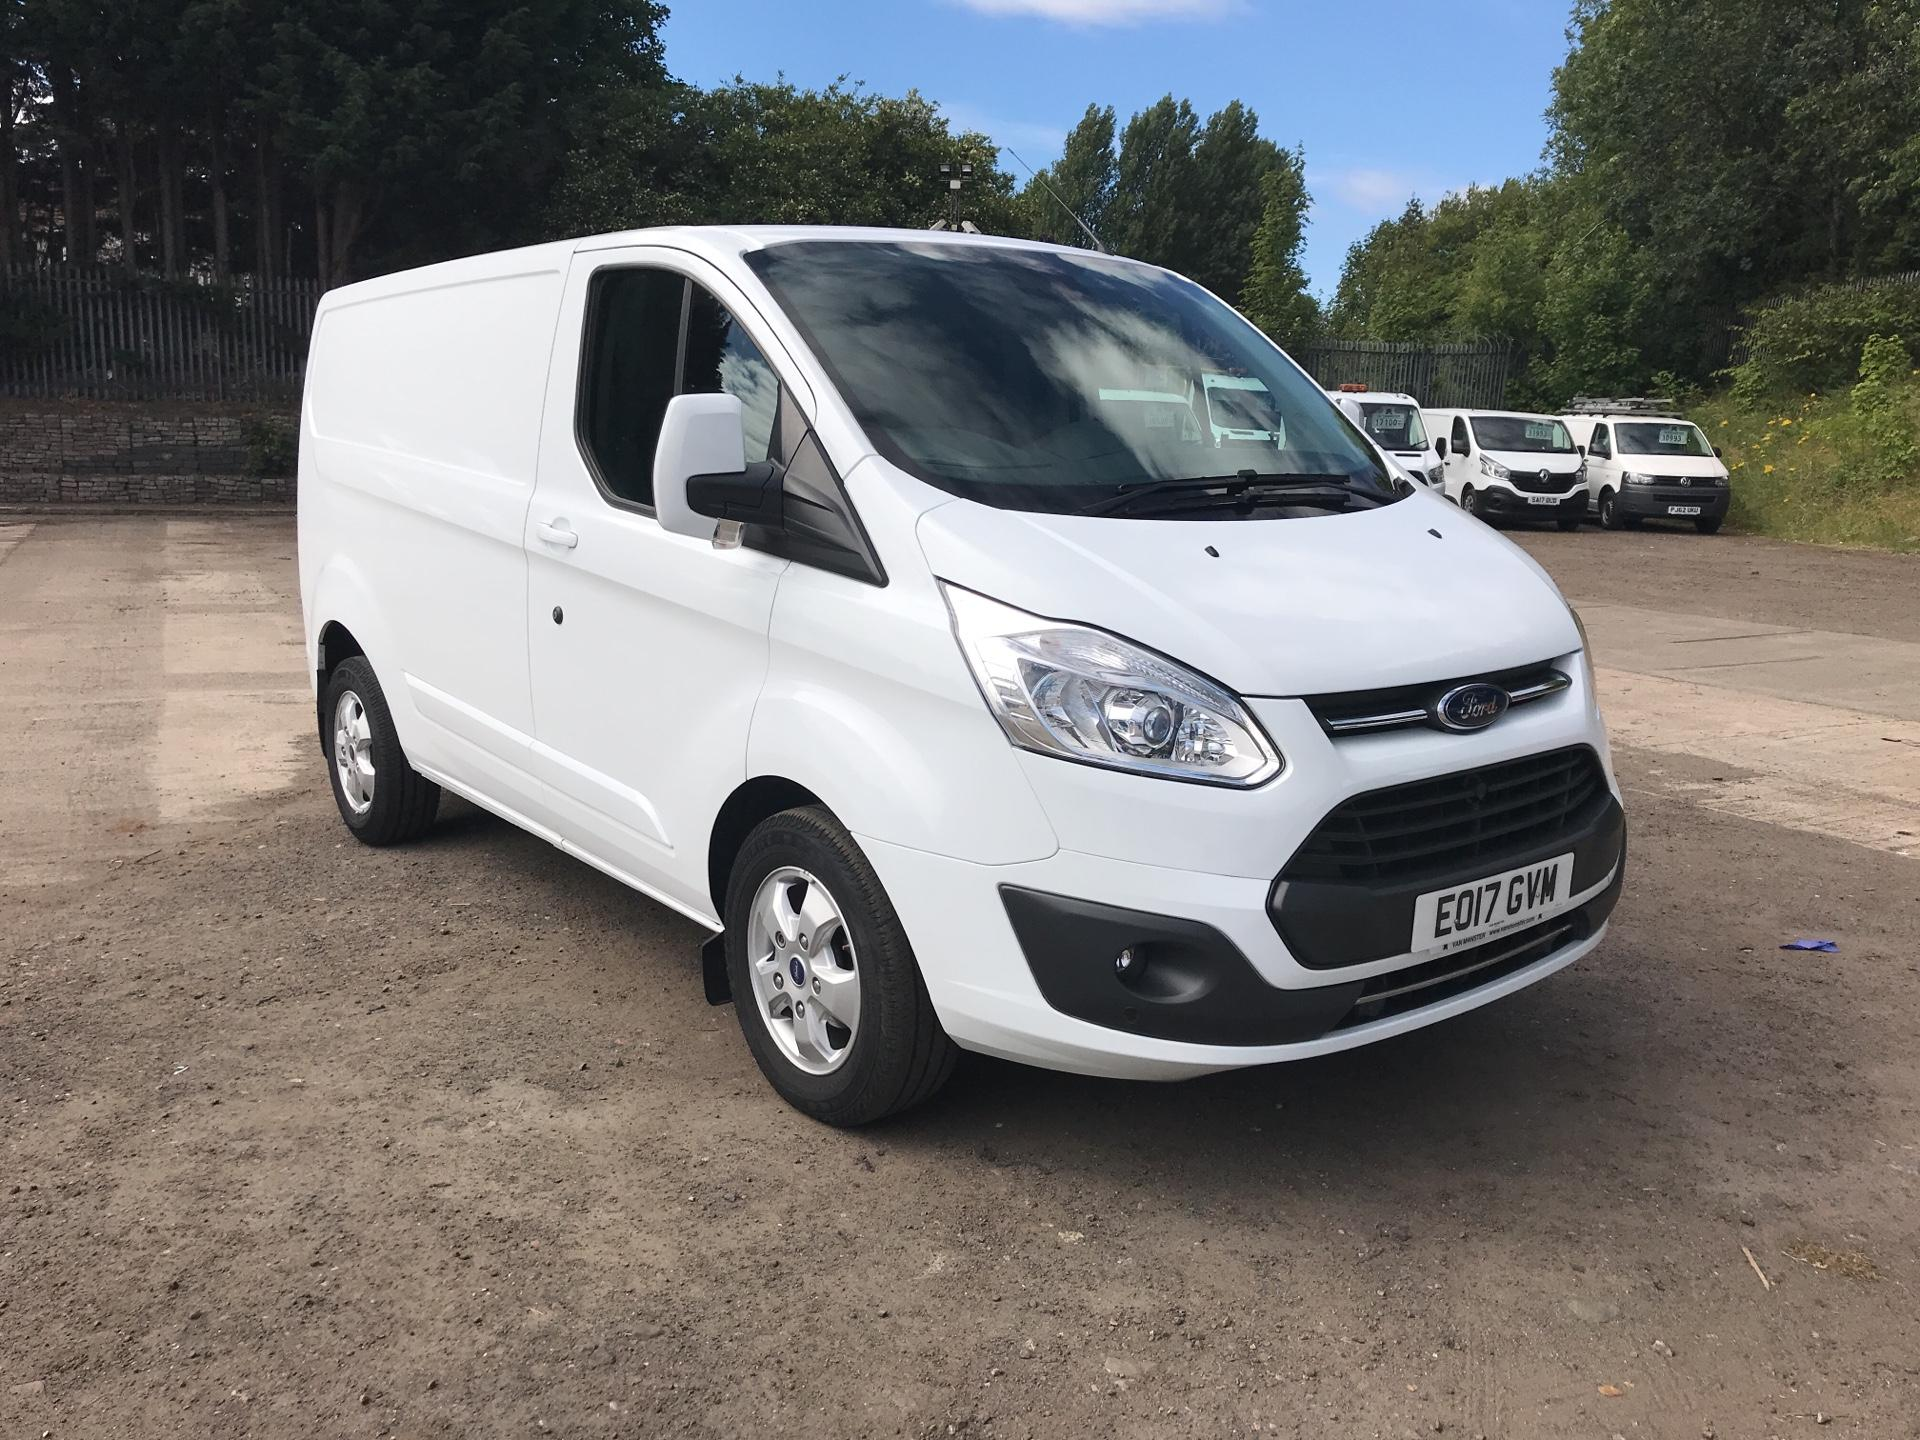 2017 Ford Transit Custom 270 L1 DIESEL FWD 2.0 TDCI 130PS LOW ROOF LIMITED EURO 6 (EO17GVM) Thumbnail 1